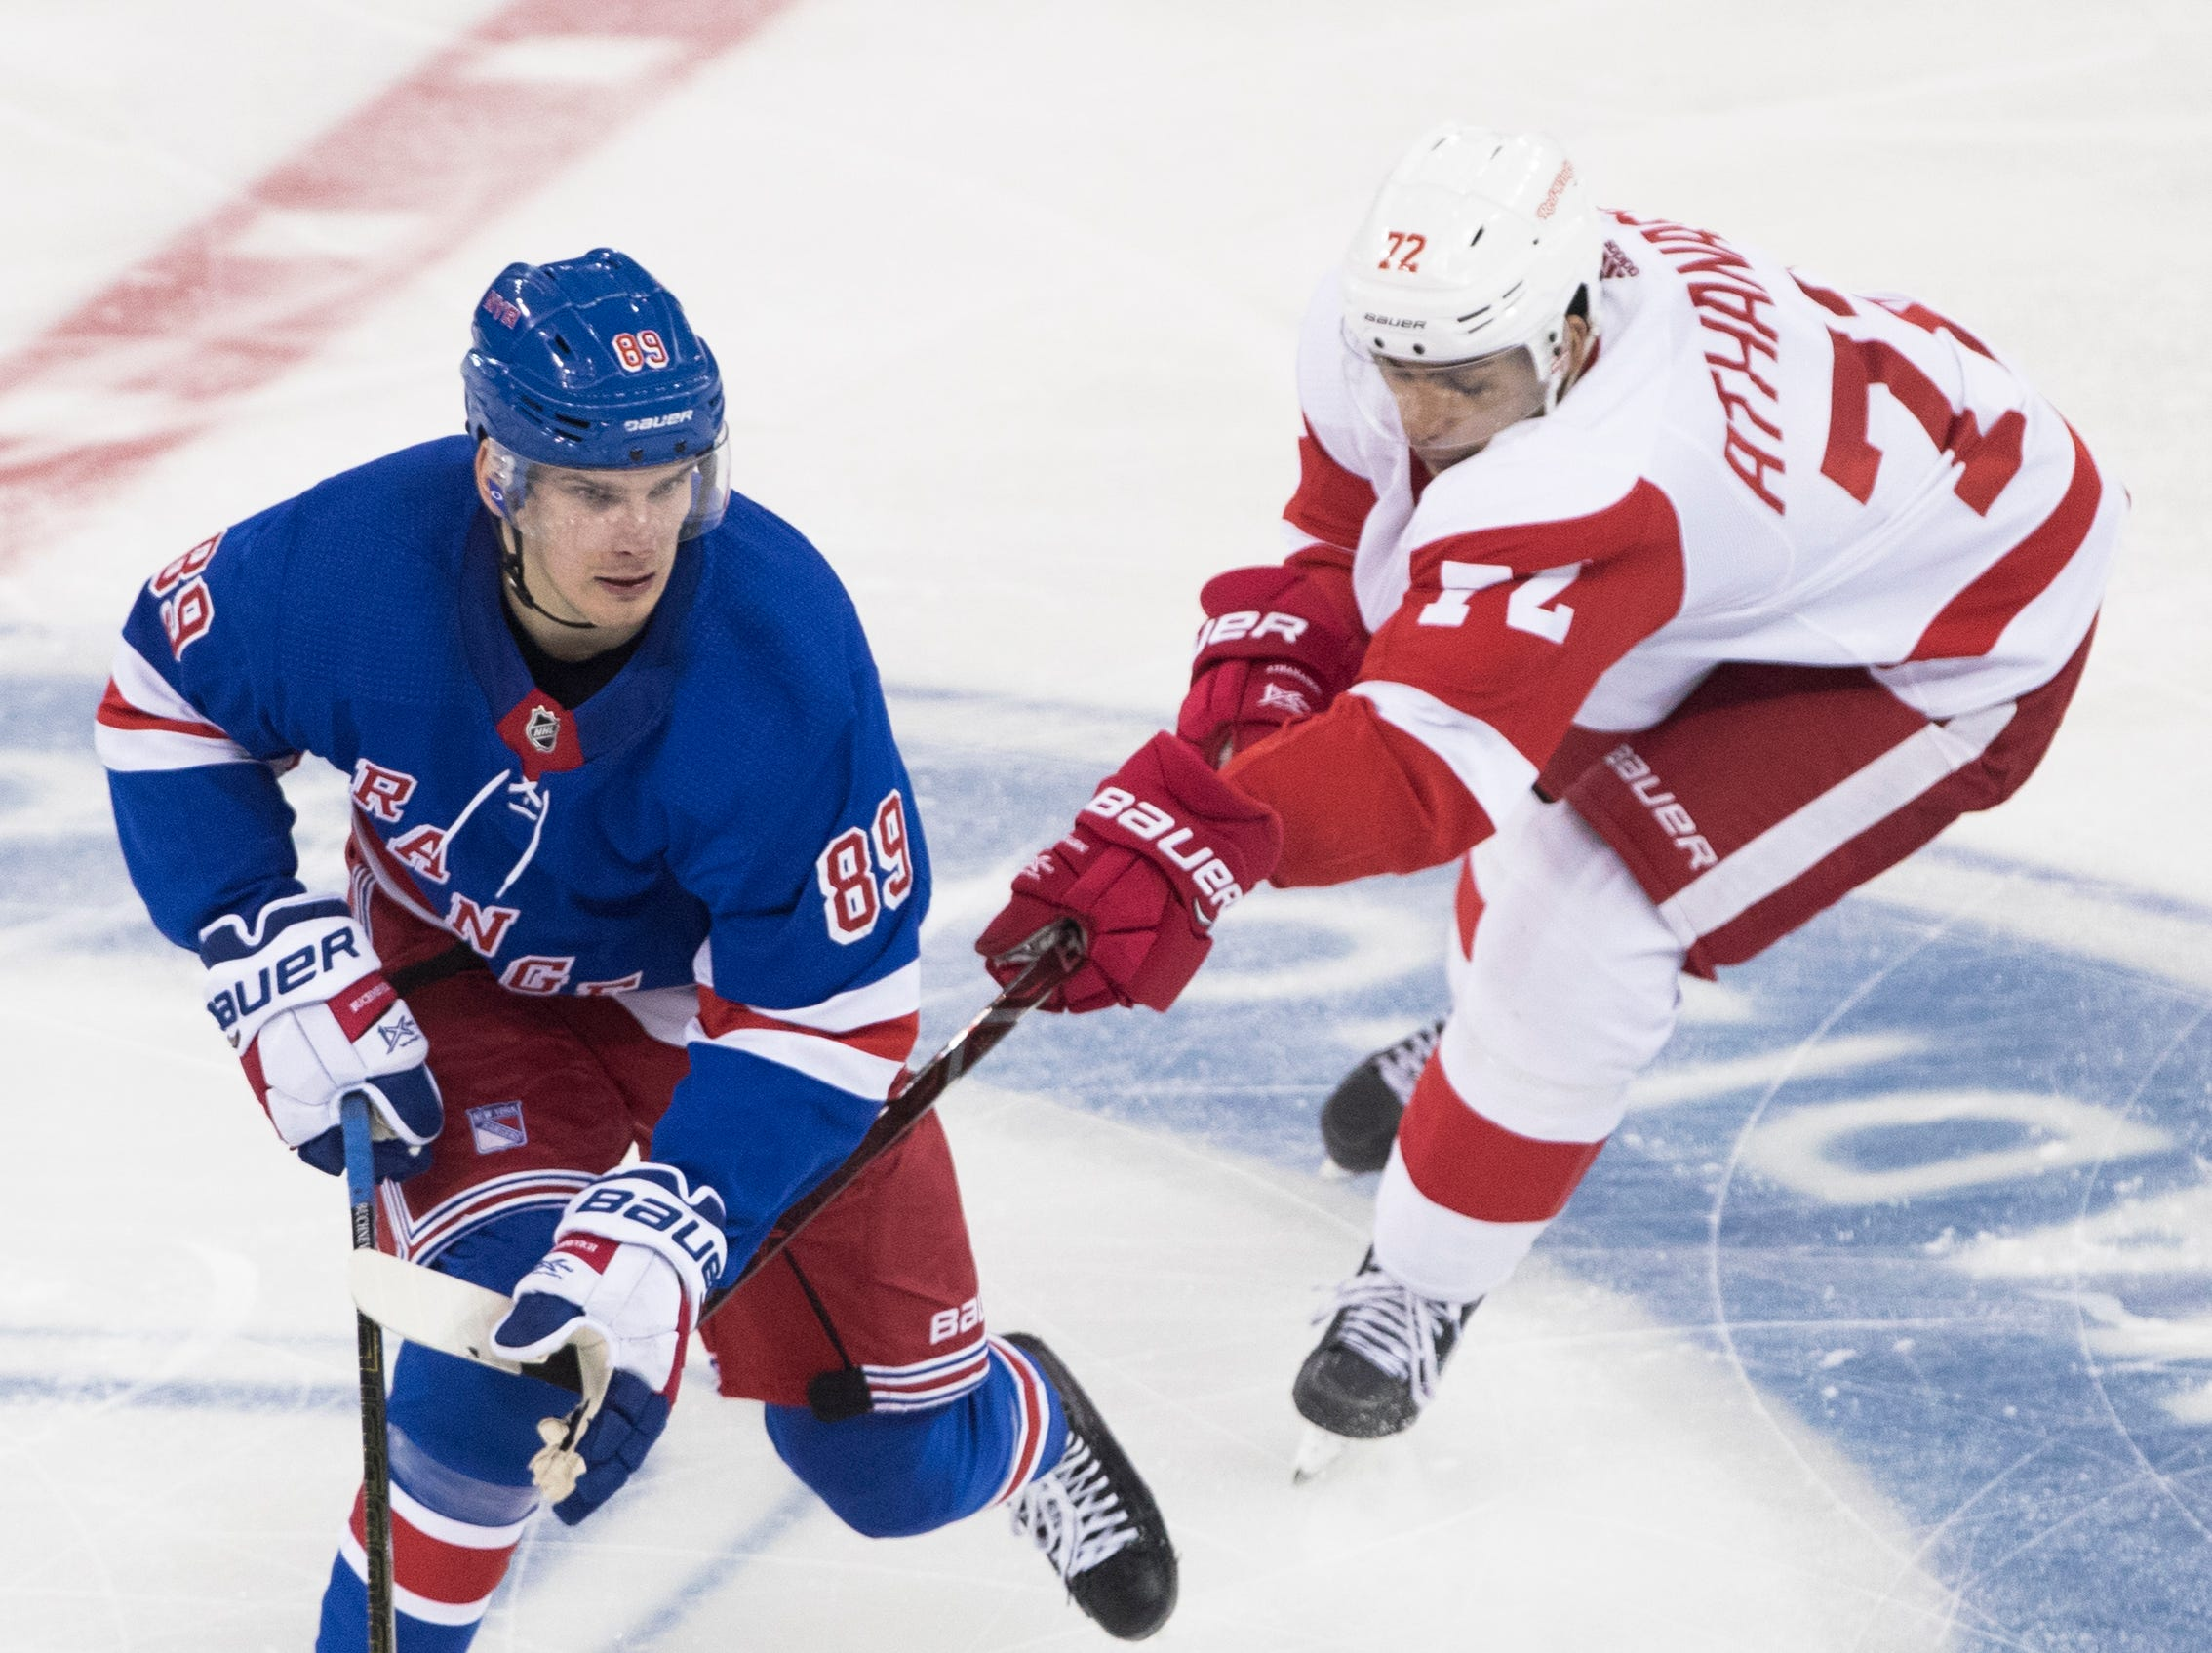 New York Rangers right wing Pavel Buchnevich (89) skates against Detroit Red Wings center Andreas Athanasiou (72) during the third period.